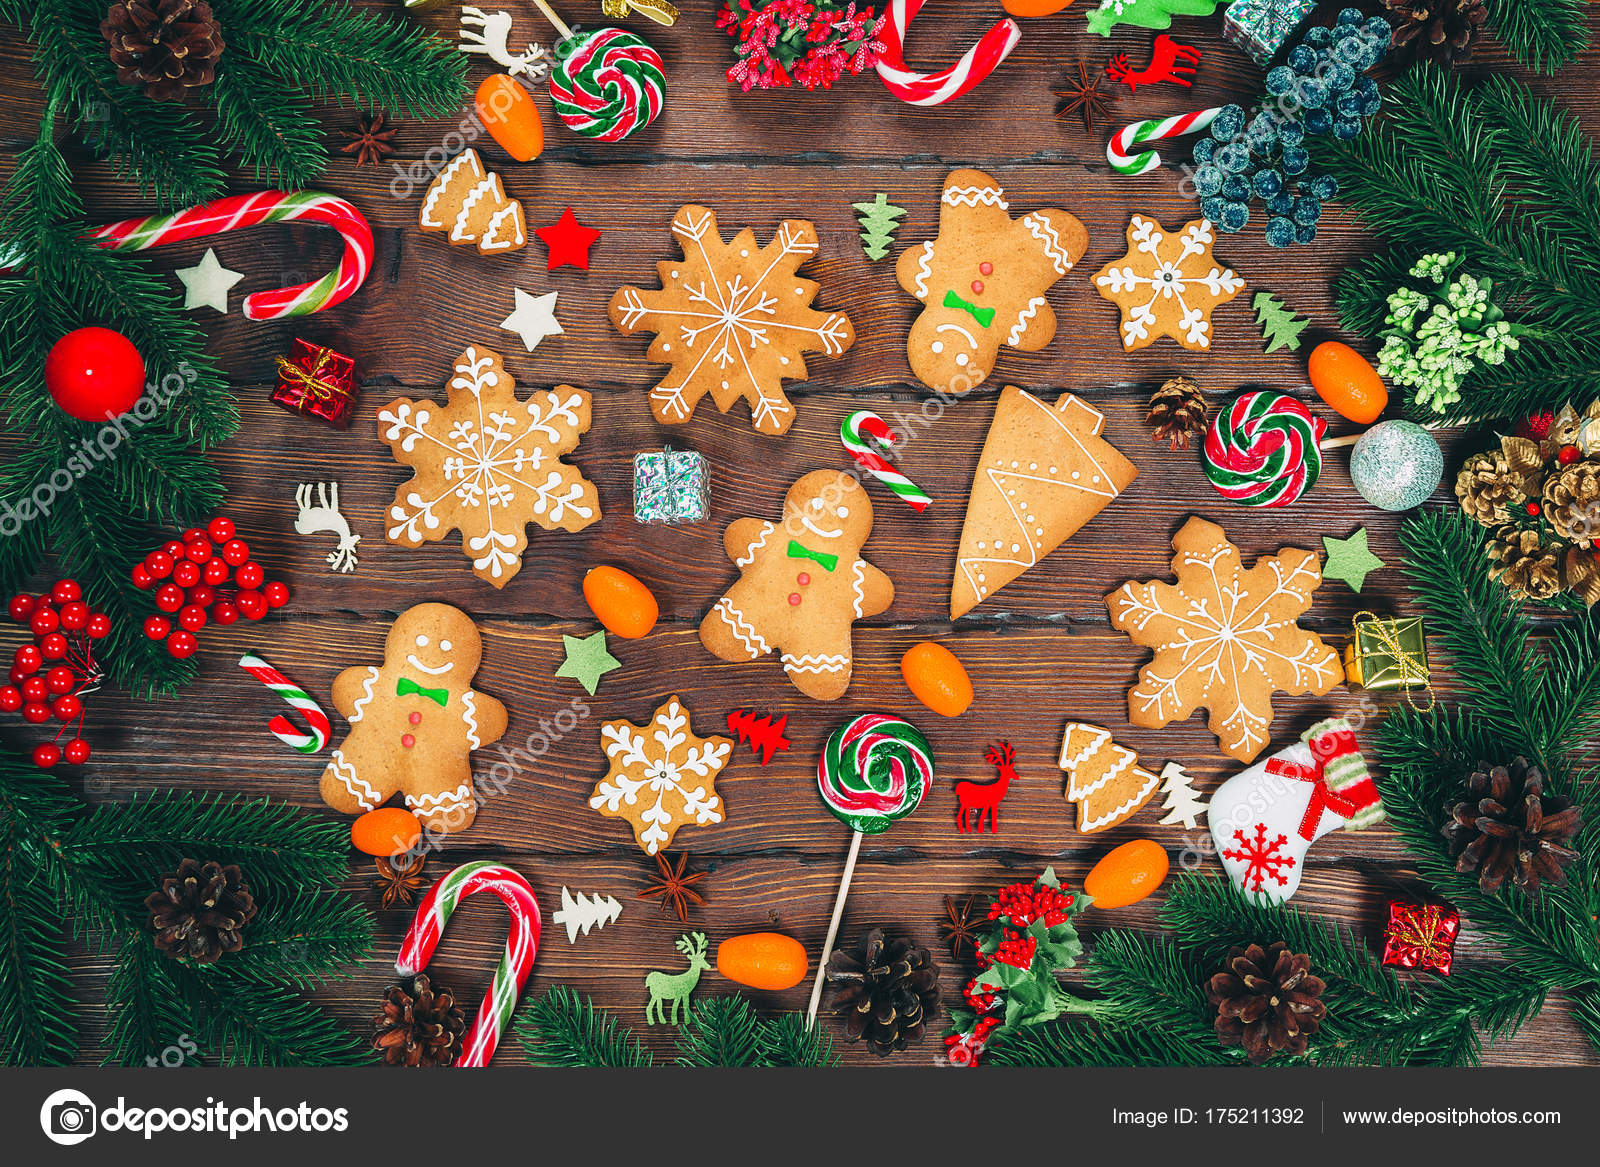 Christmas gingerbread cookies homemade on wooden table with candies and New Year decorations. Xmas background– stock image